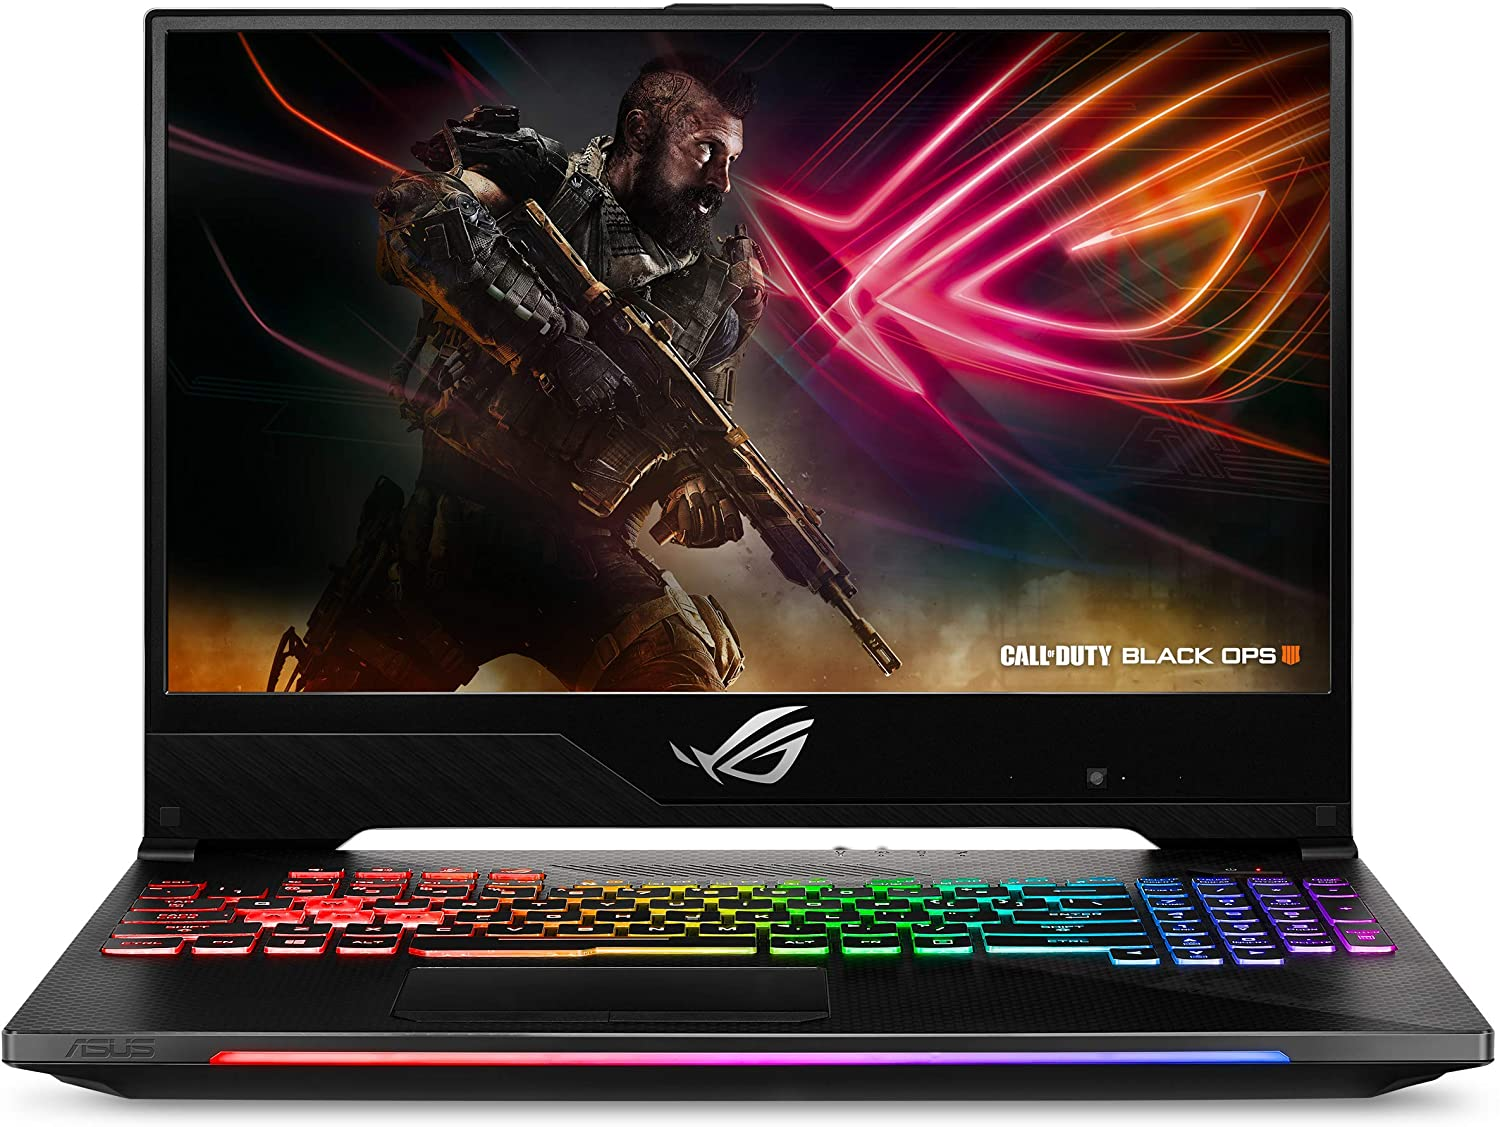 "ASUS ROG Strix SCAR II Slim Gaming Laptop GL504, 15.6"" 144Hz IPS Type, NVIDIA GeForce GTX 1070, Intel Core i7-8750H Processor, 16GB DDR4, 256GB PCIe SSD + 1TB SSHD, Windows 10 Home - GL504GS-DS74"